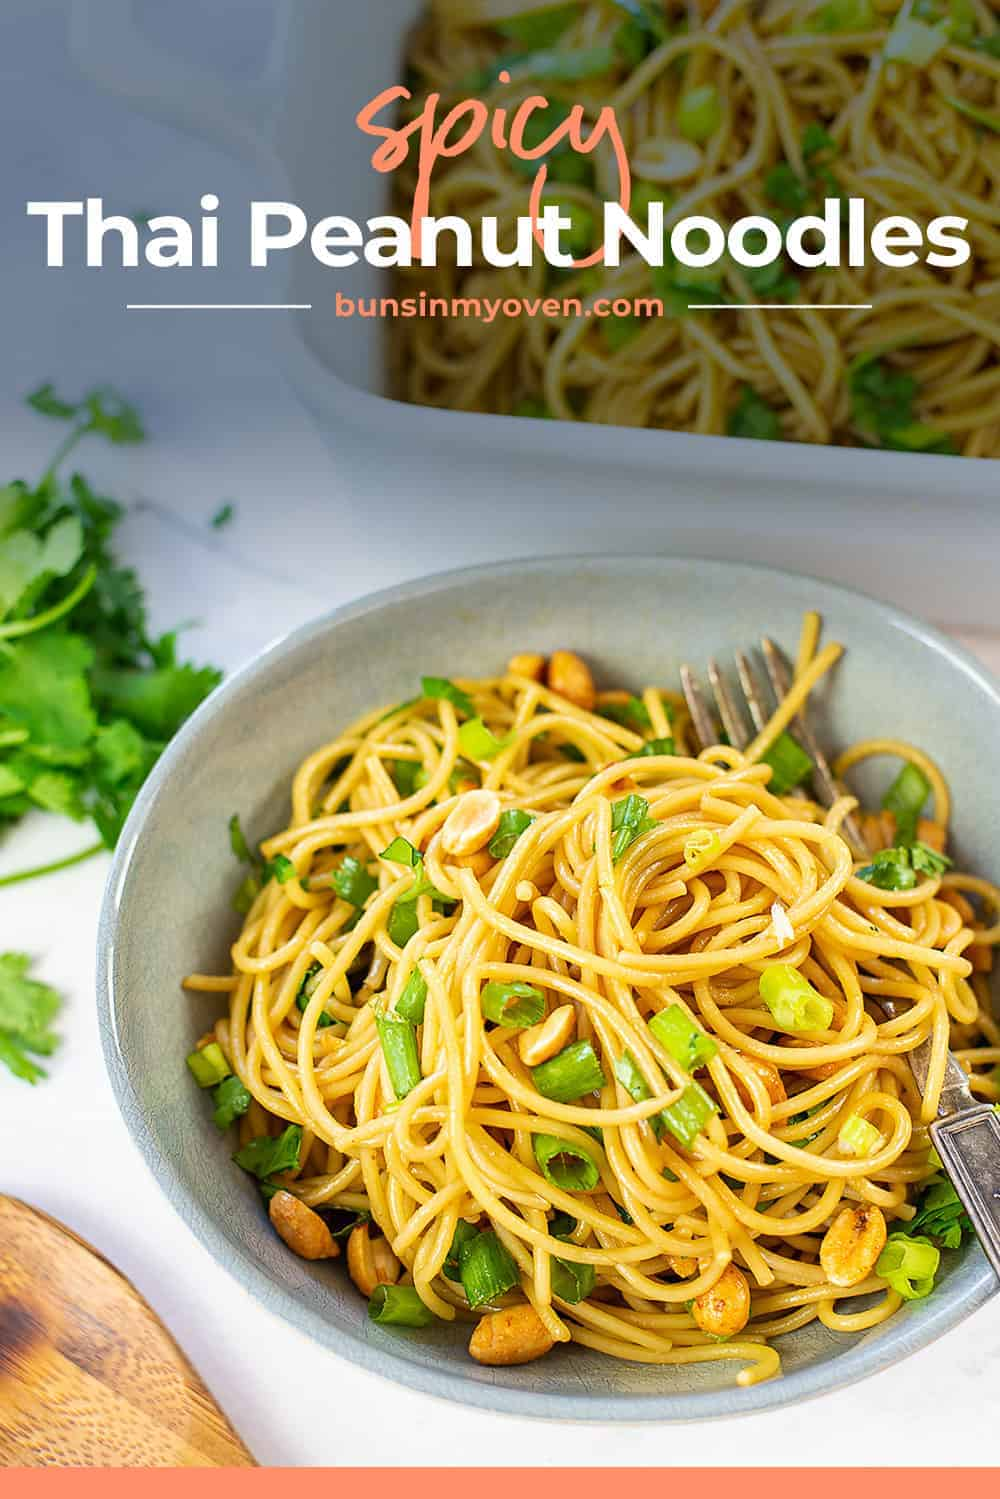 spicy peanut noodles in dish with text for Pinterest.